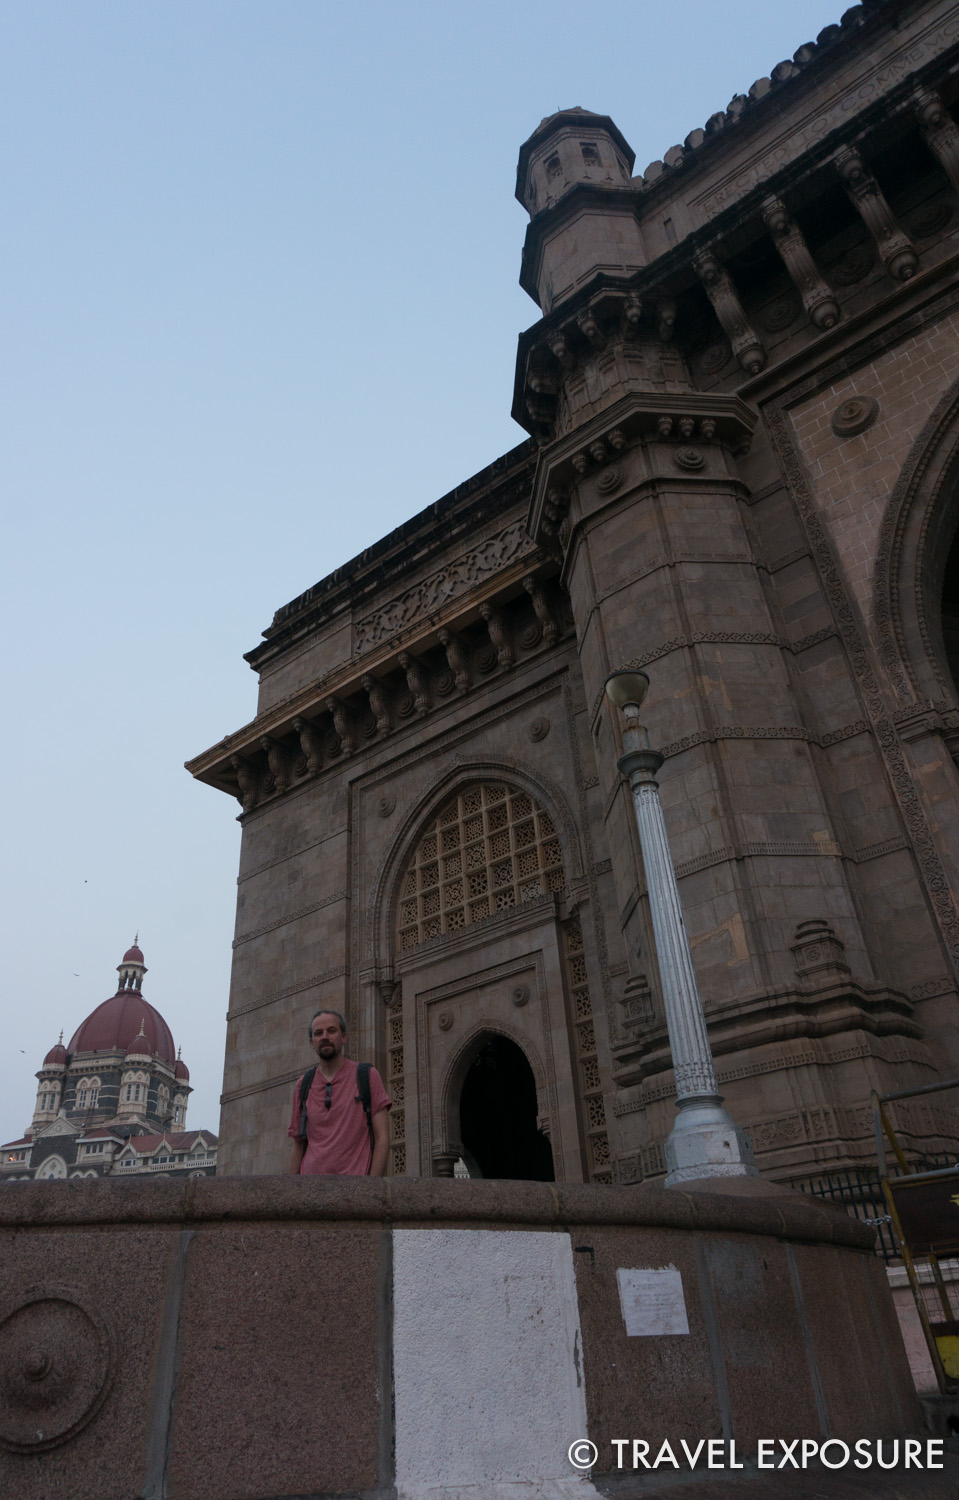 The Gateway of India monument, built during the British Raj in Mumbai